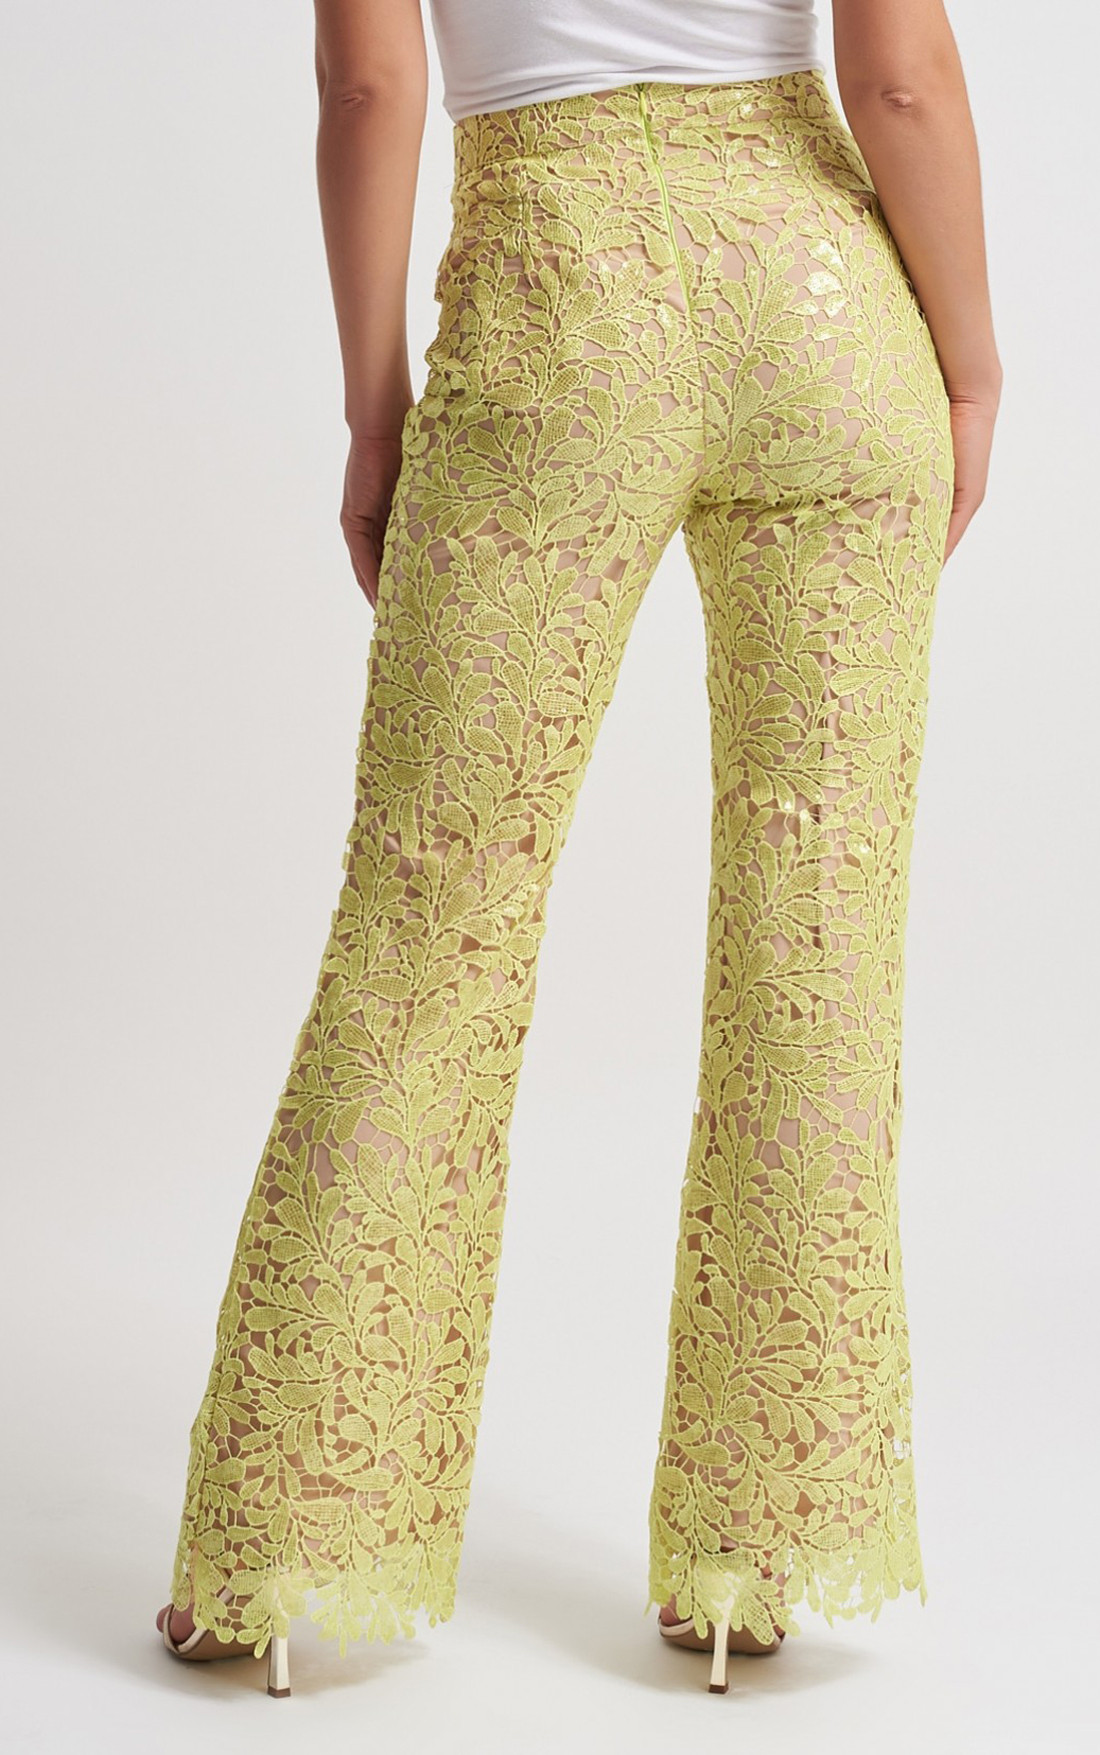 Forever Unique - Lana Lime Floral Lace Sequin Trousers (MN201157)